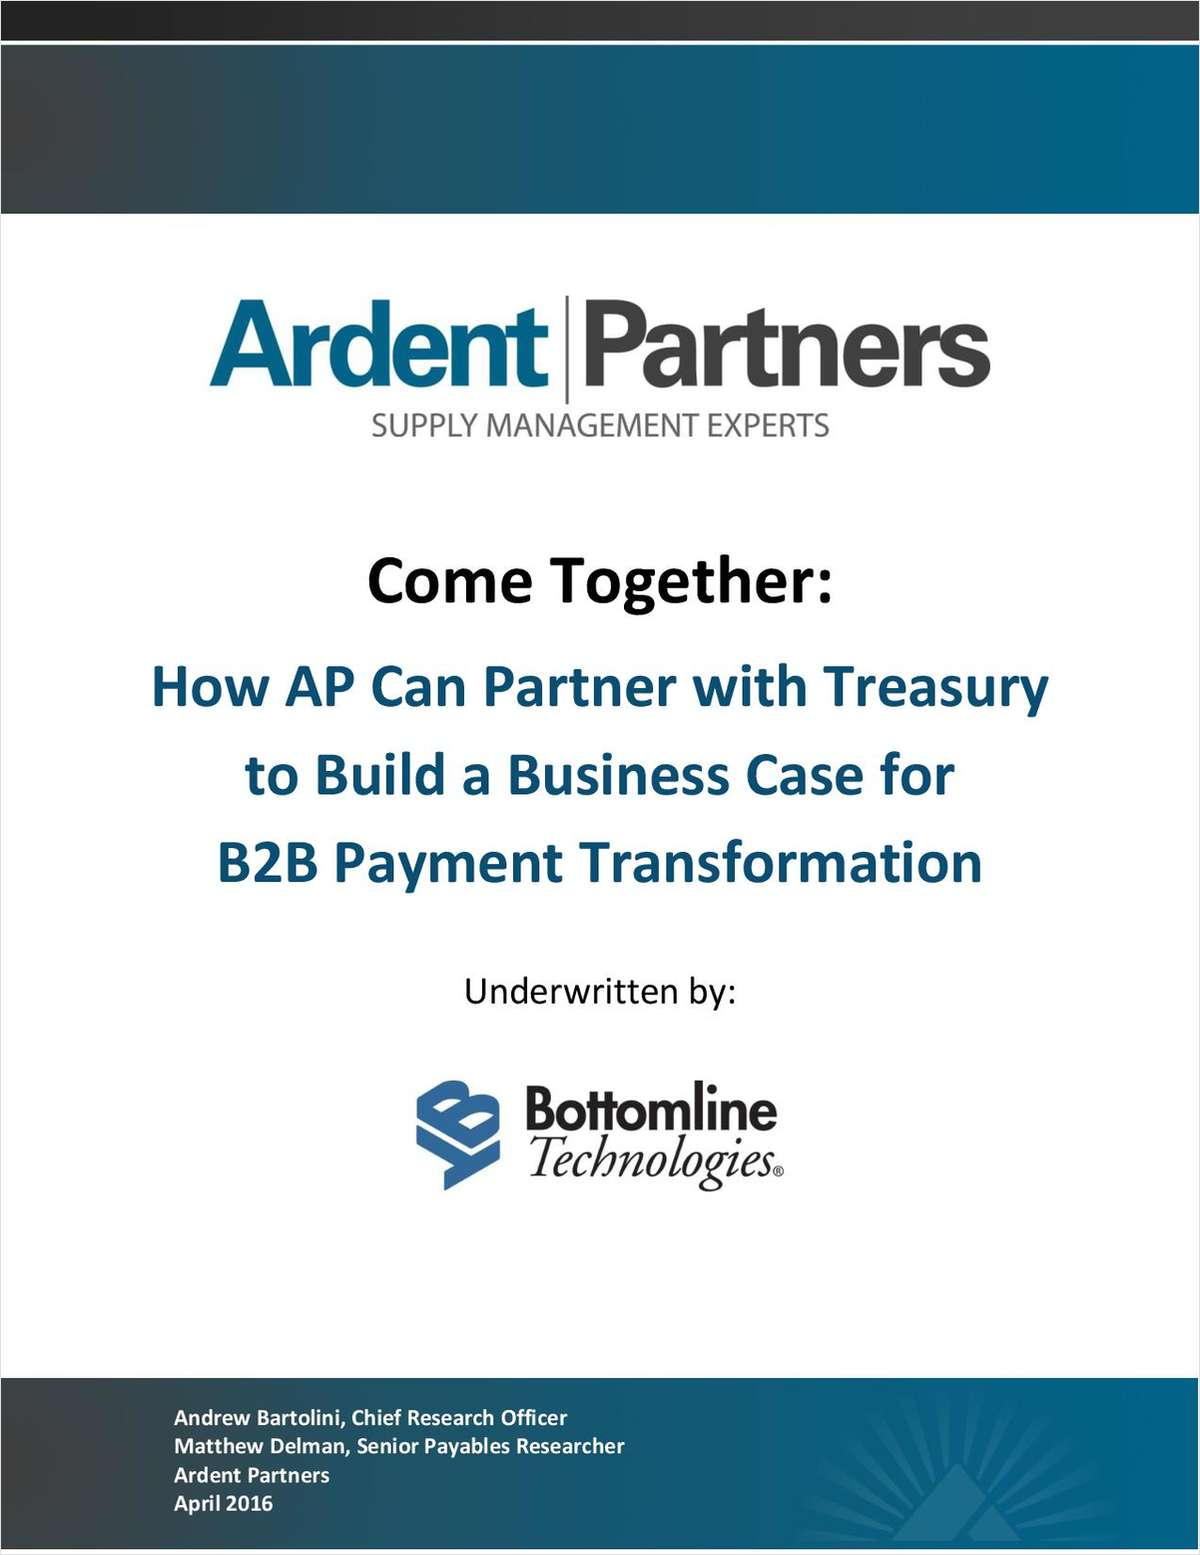 How AP Can Partner with Treasury to Build a Business Case for B2B Payment Transformation